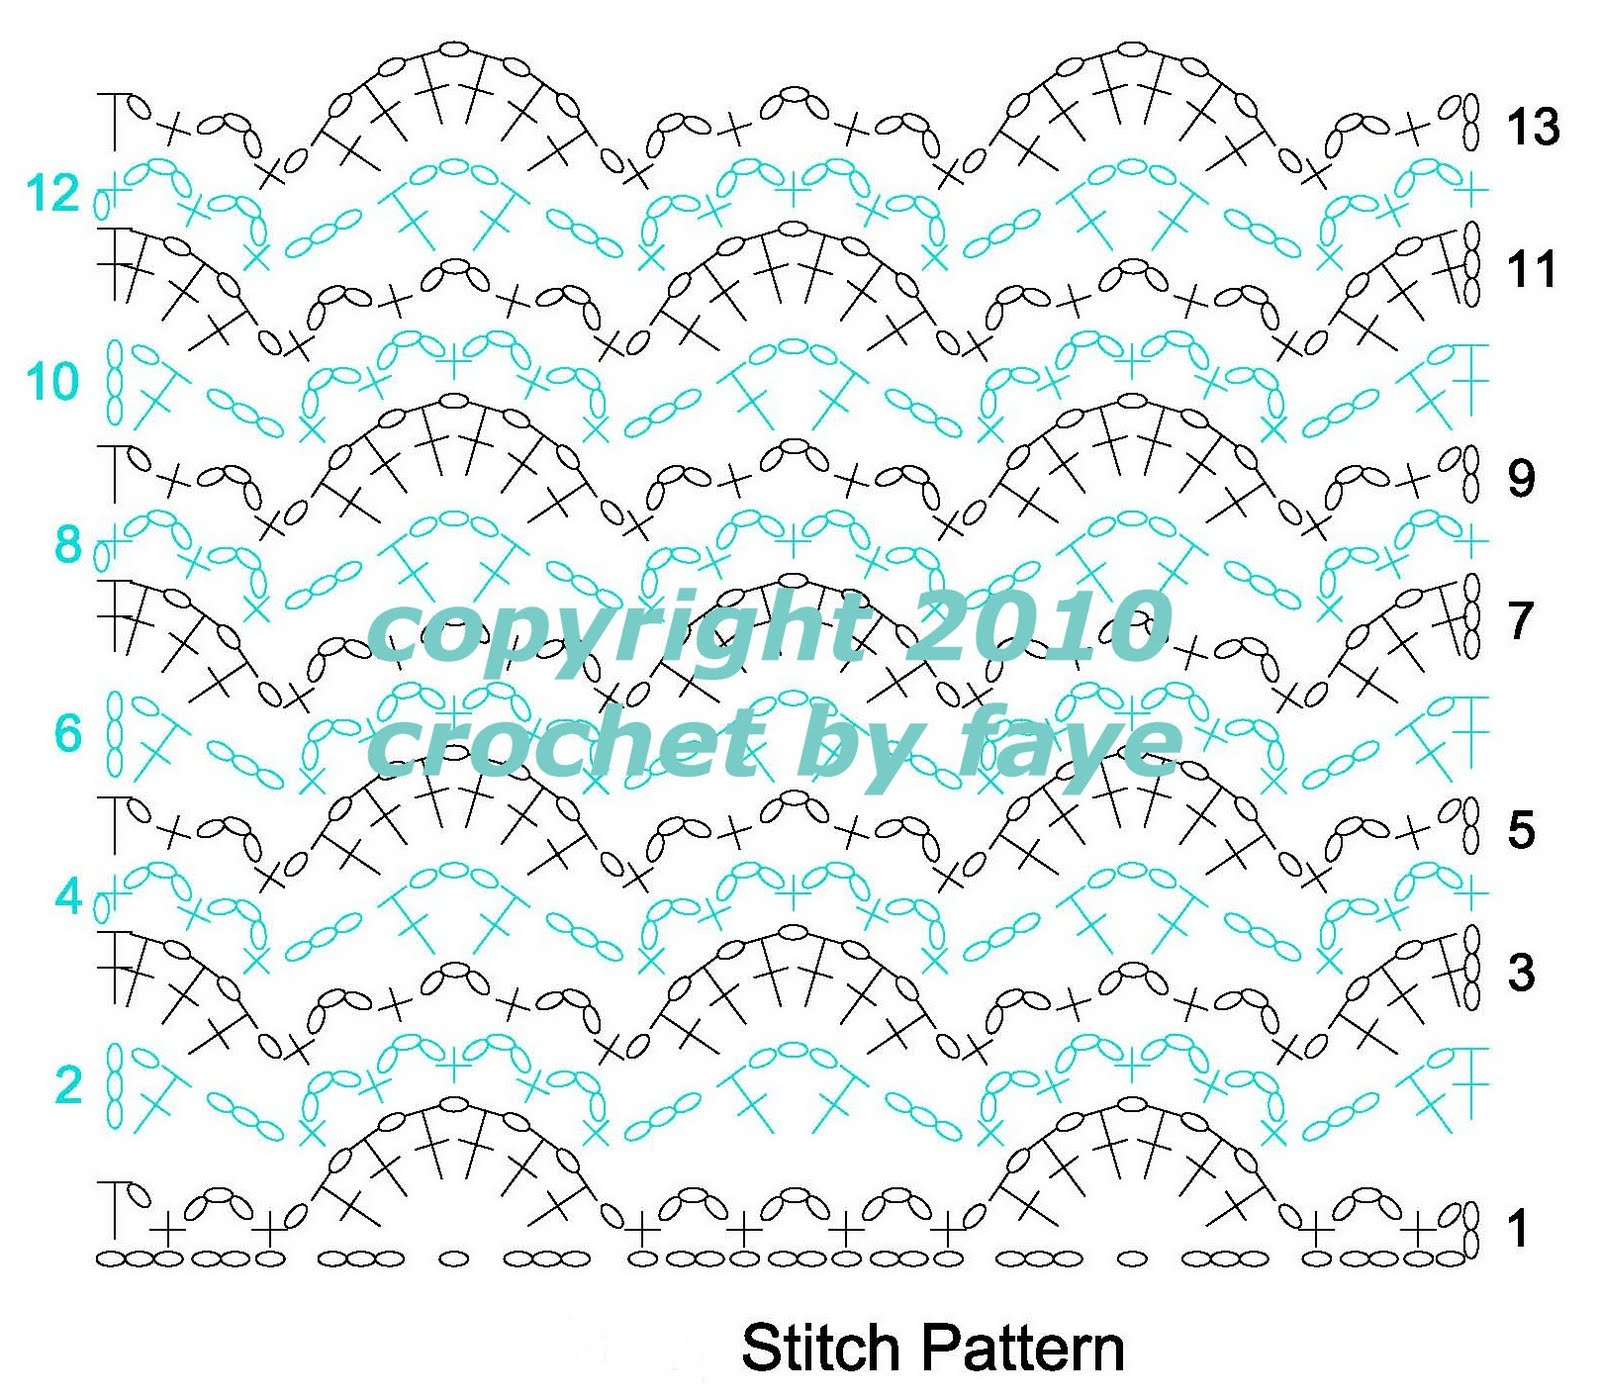 Crochet Stitch Patterns : Crochet Patterns Stitches - Catalog of Patterns